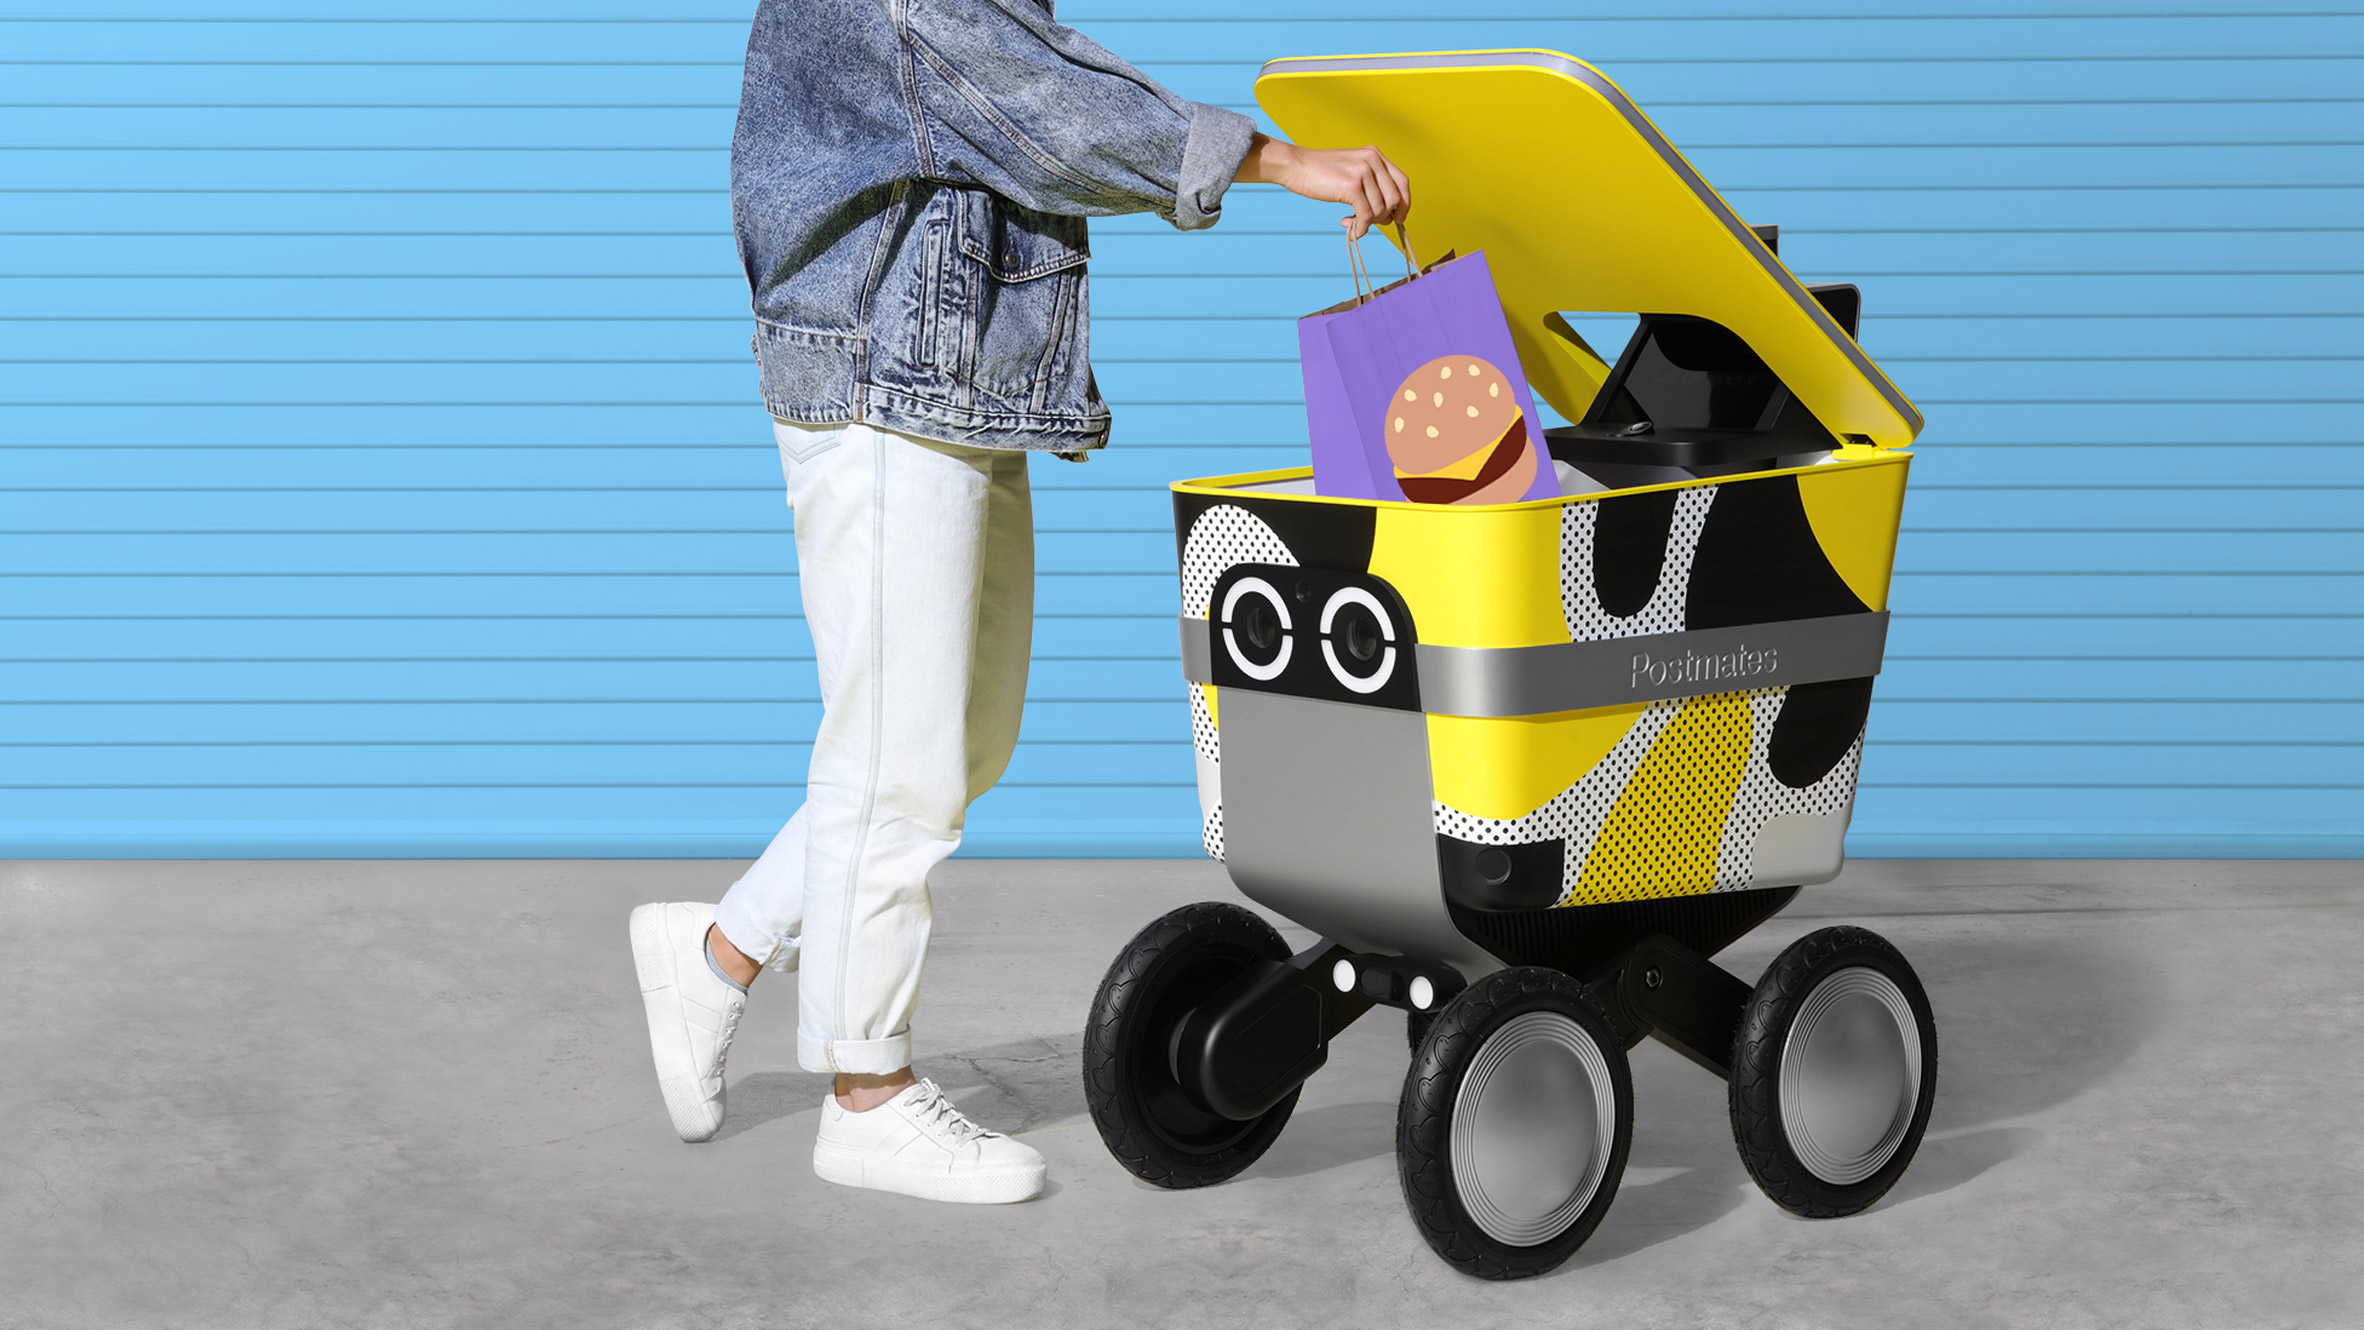 Serve delivery robot by New Deal Design and Postmates